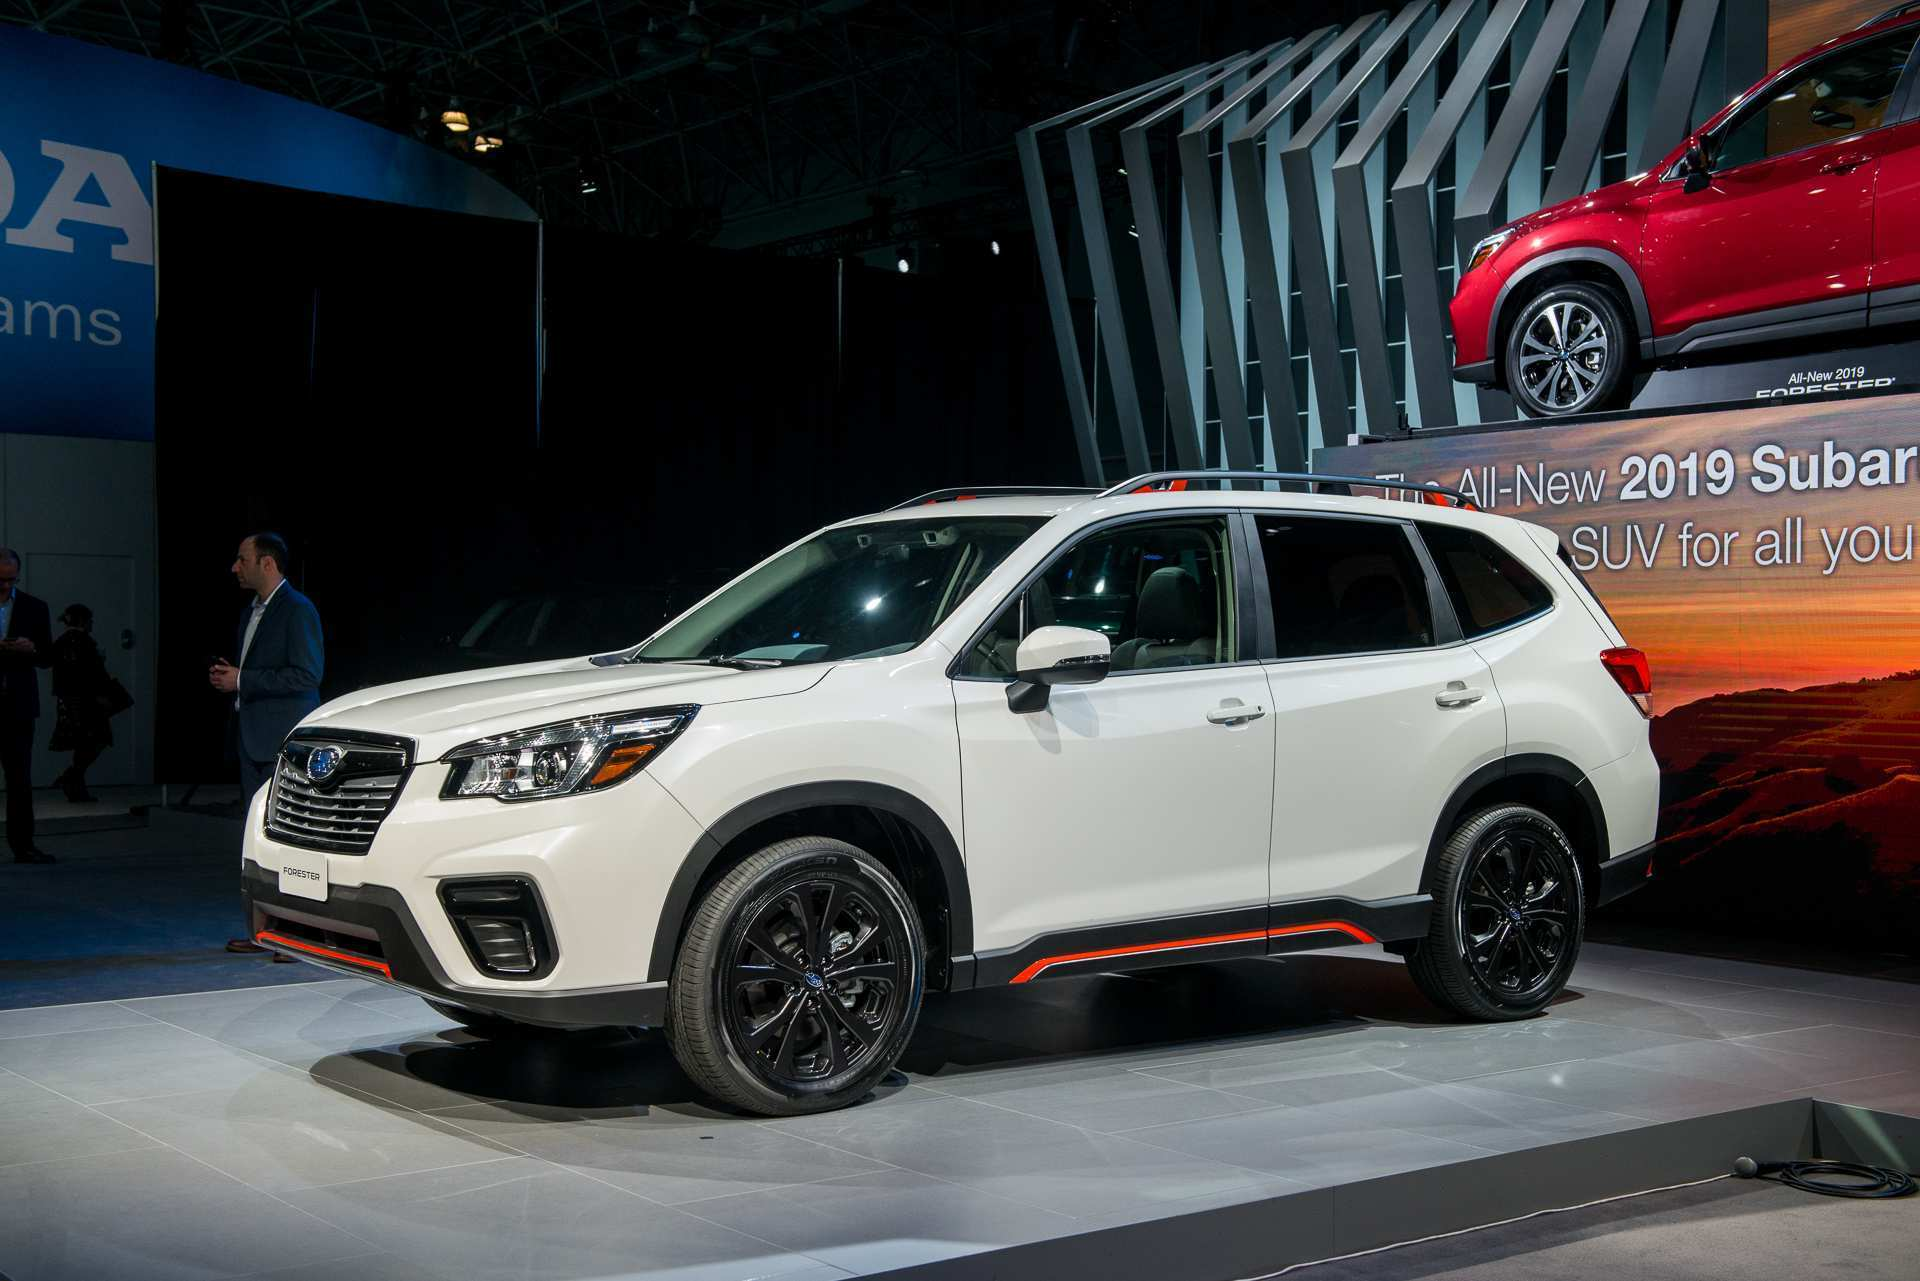 91 All New 2019 Subaru Suv Photos with 2019 Subaru Suv